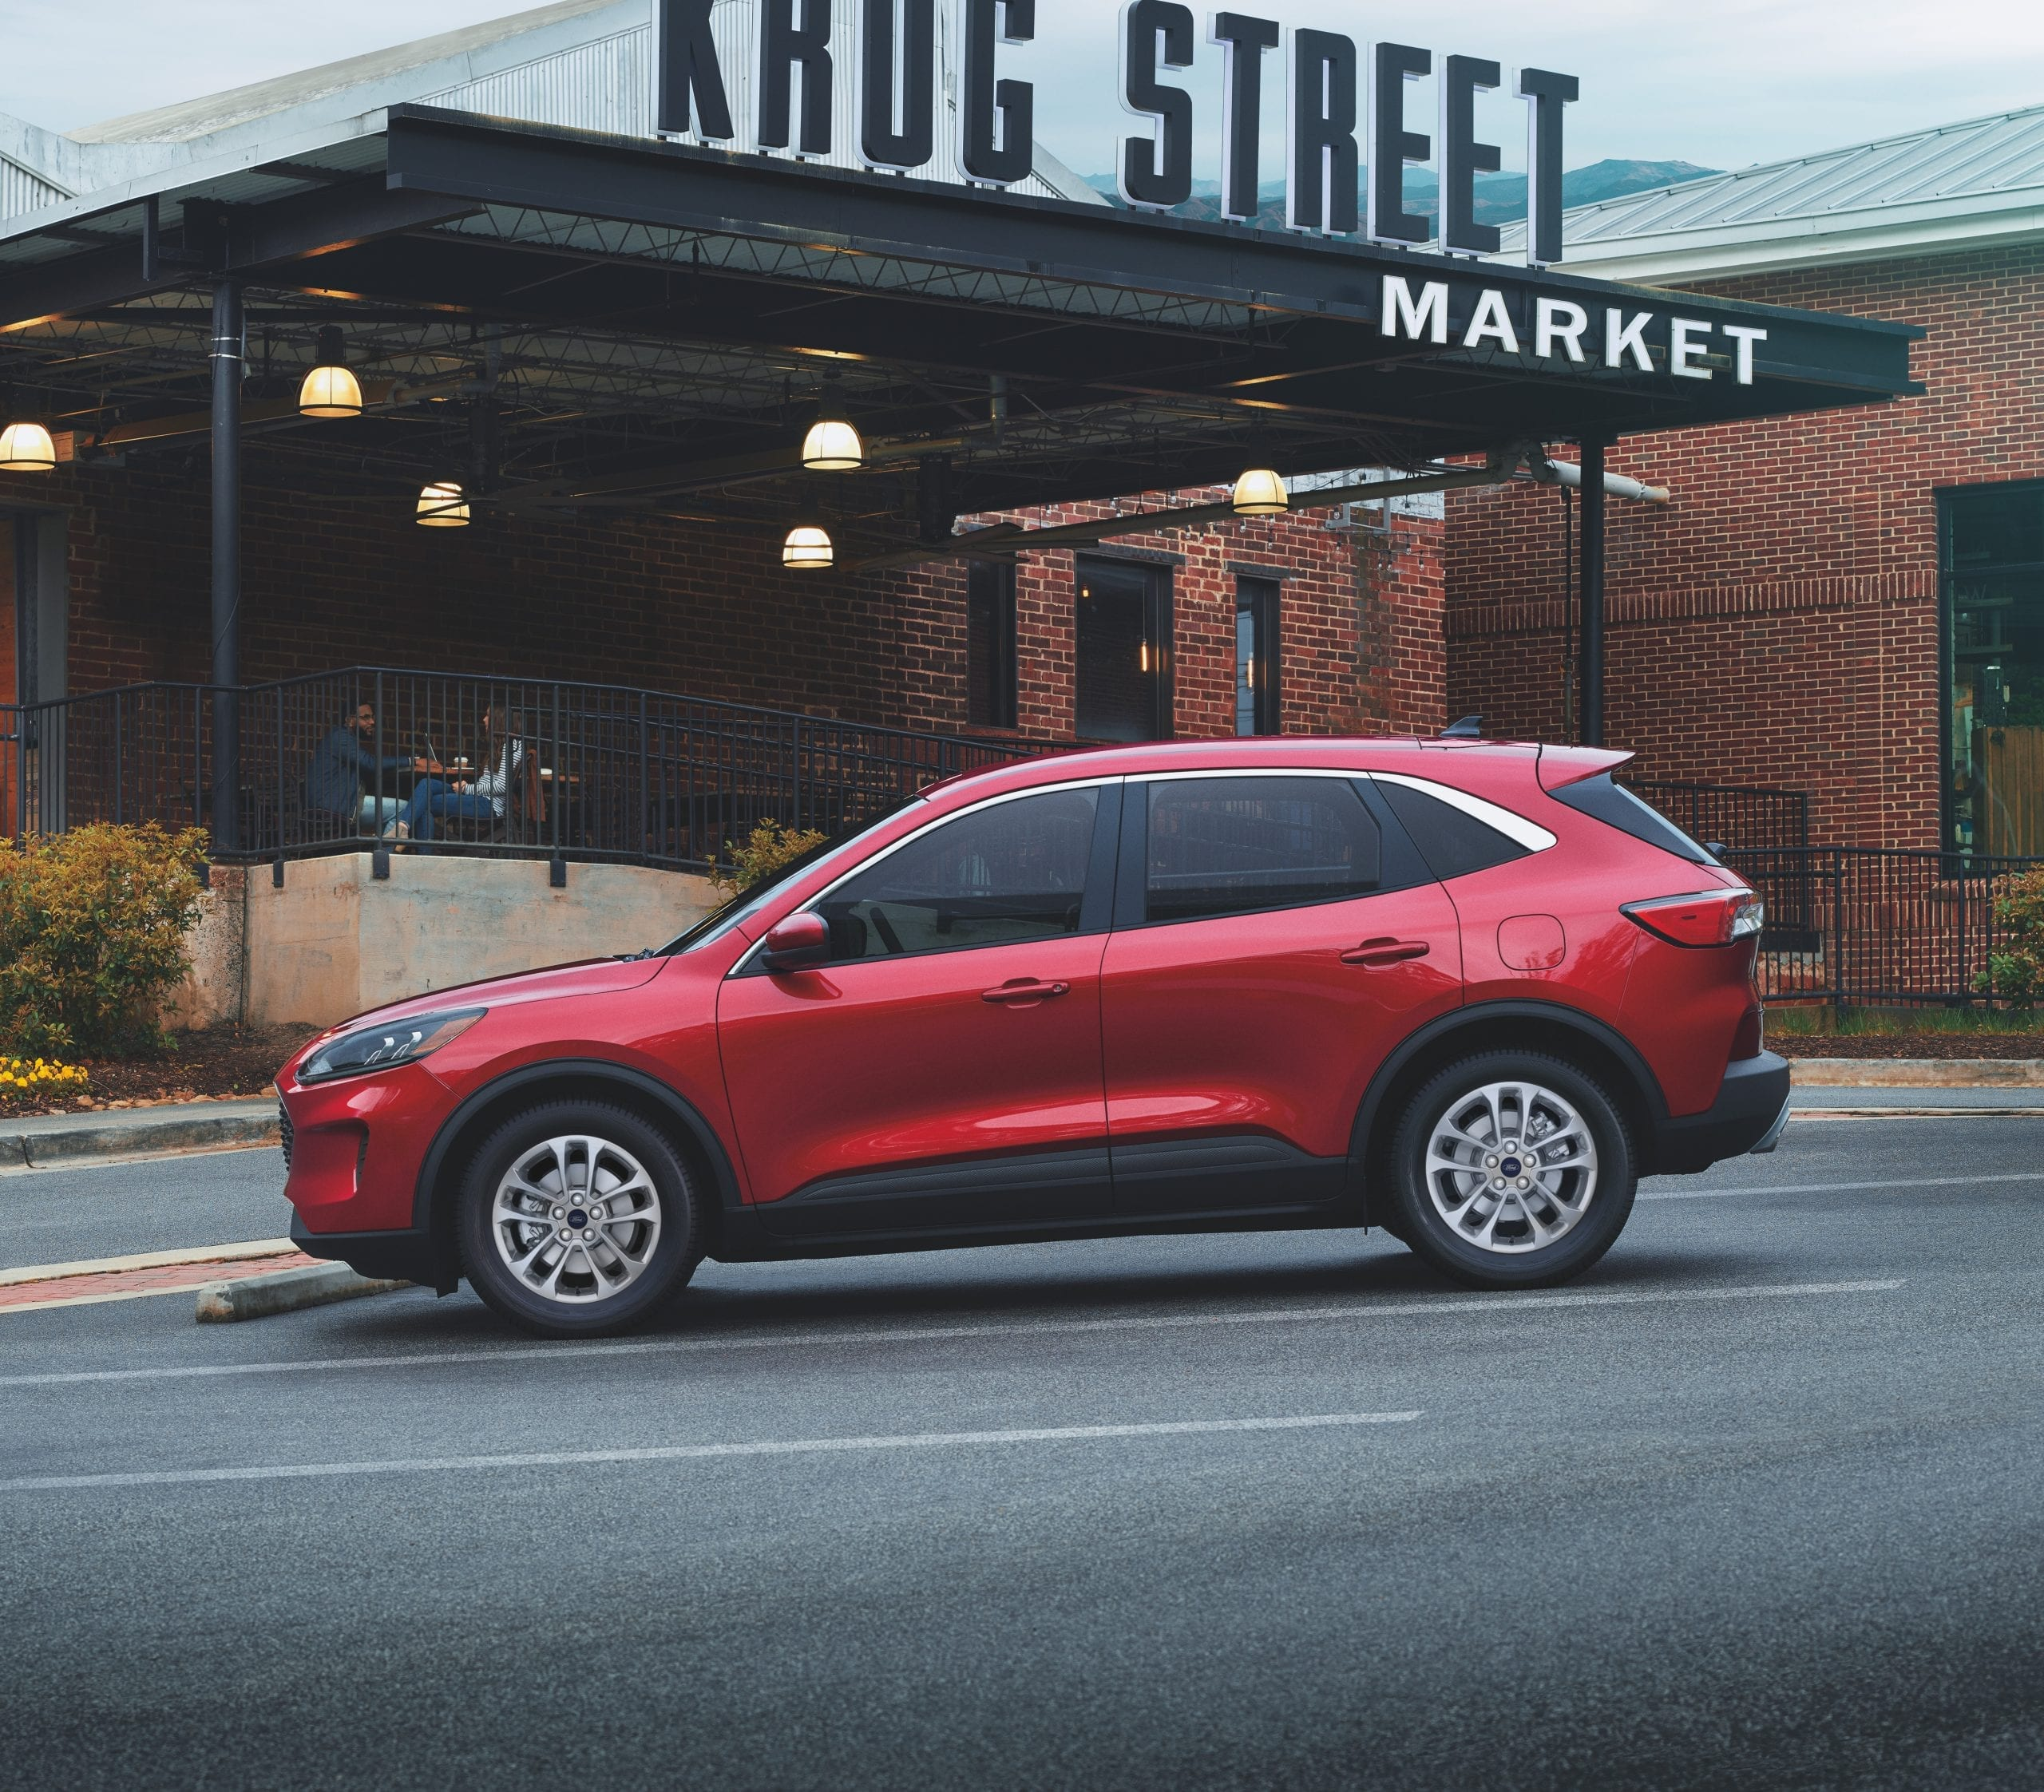 2021 Ford Escape red side profile street shot